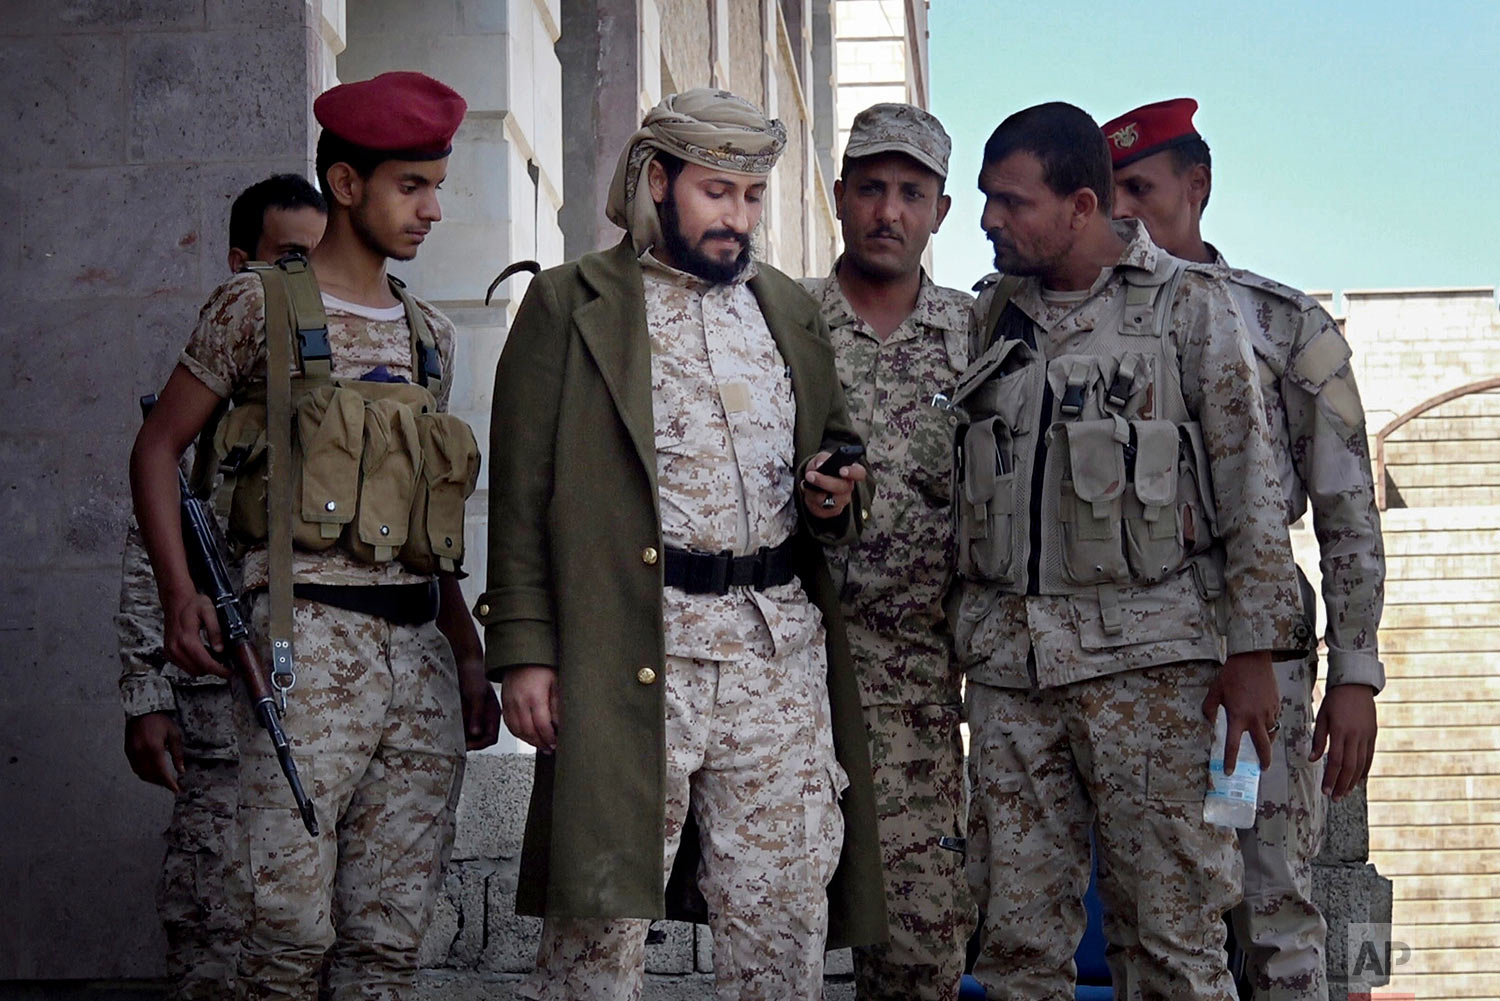 Adnan Rouzek, center, stands with fighters in Taiz. (AP Photo)